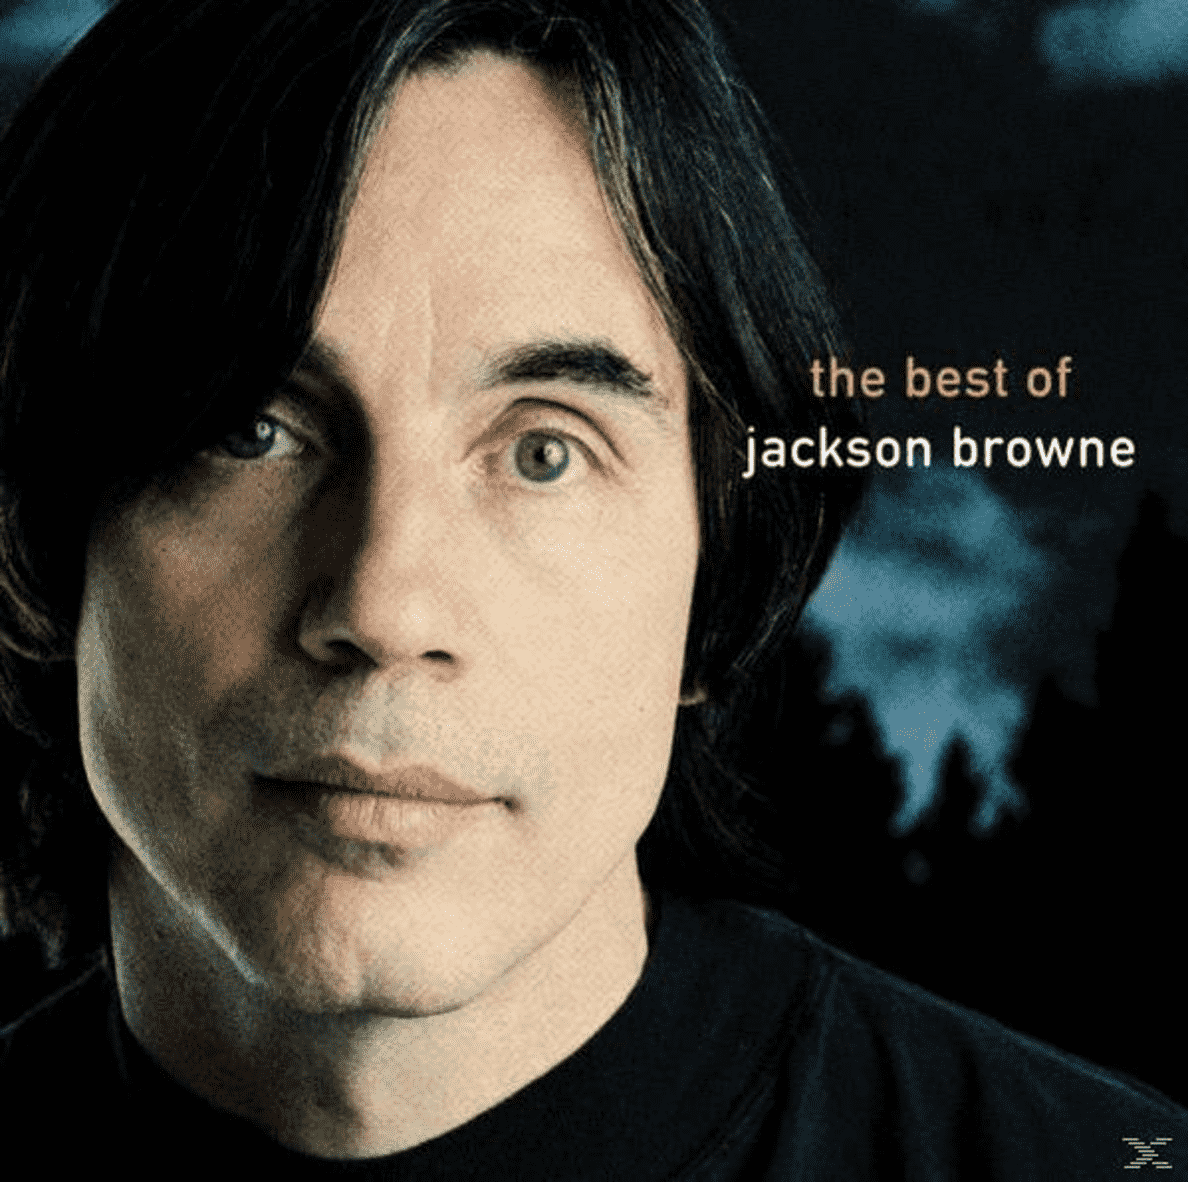 Jackson Browne - Best Of, The - (CD)